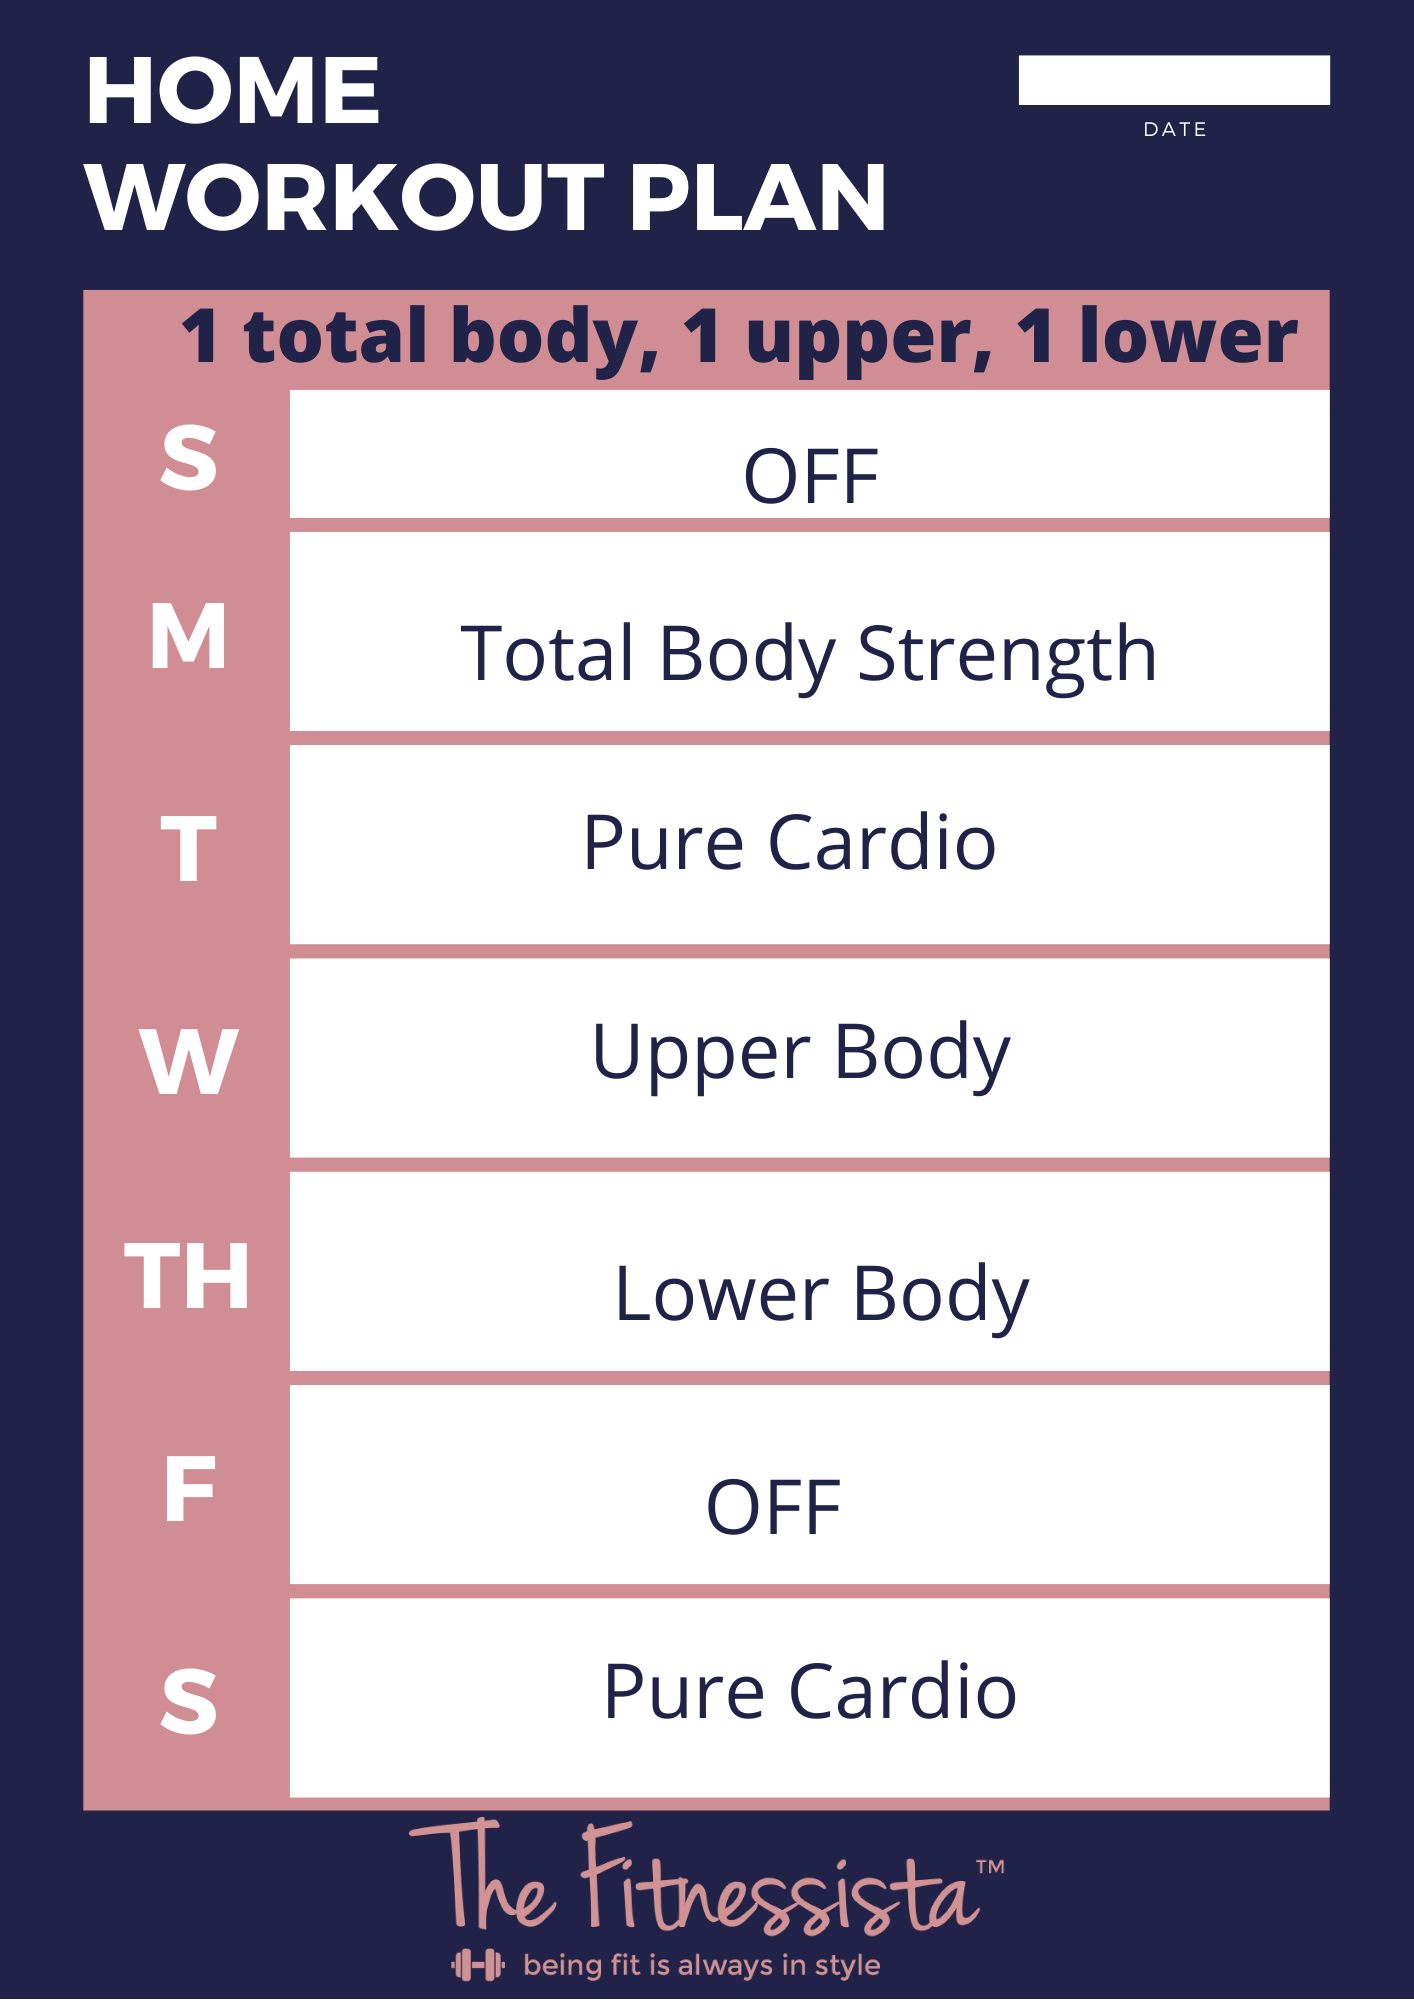 Home Workout Plan You Can Follow Featuring Live Workouts Apps And On Demand The Fitnessista In 2020 At Home Workout Plan At Home Workouts Effective Workout Plan